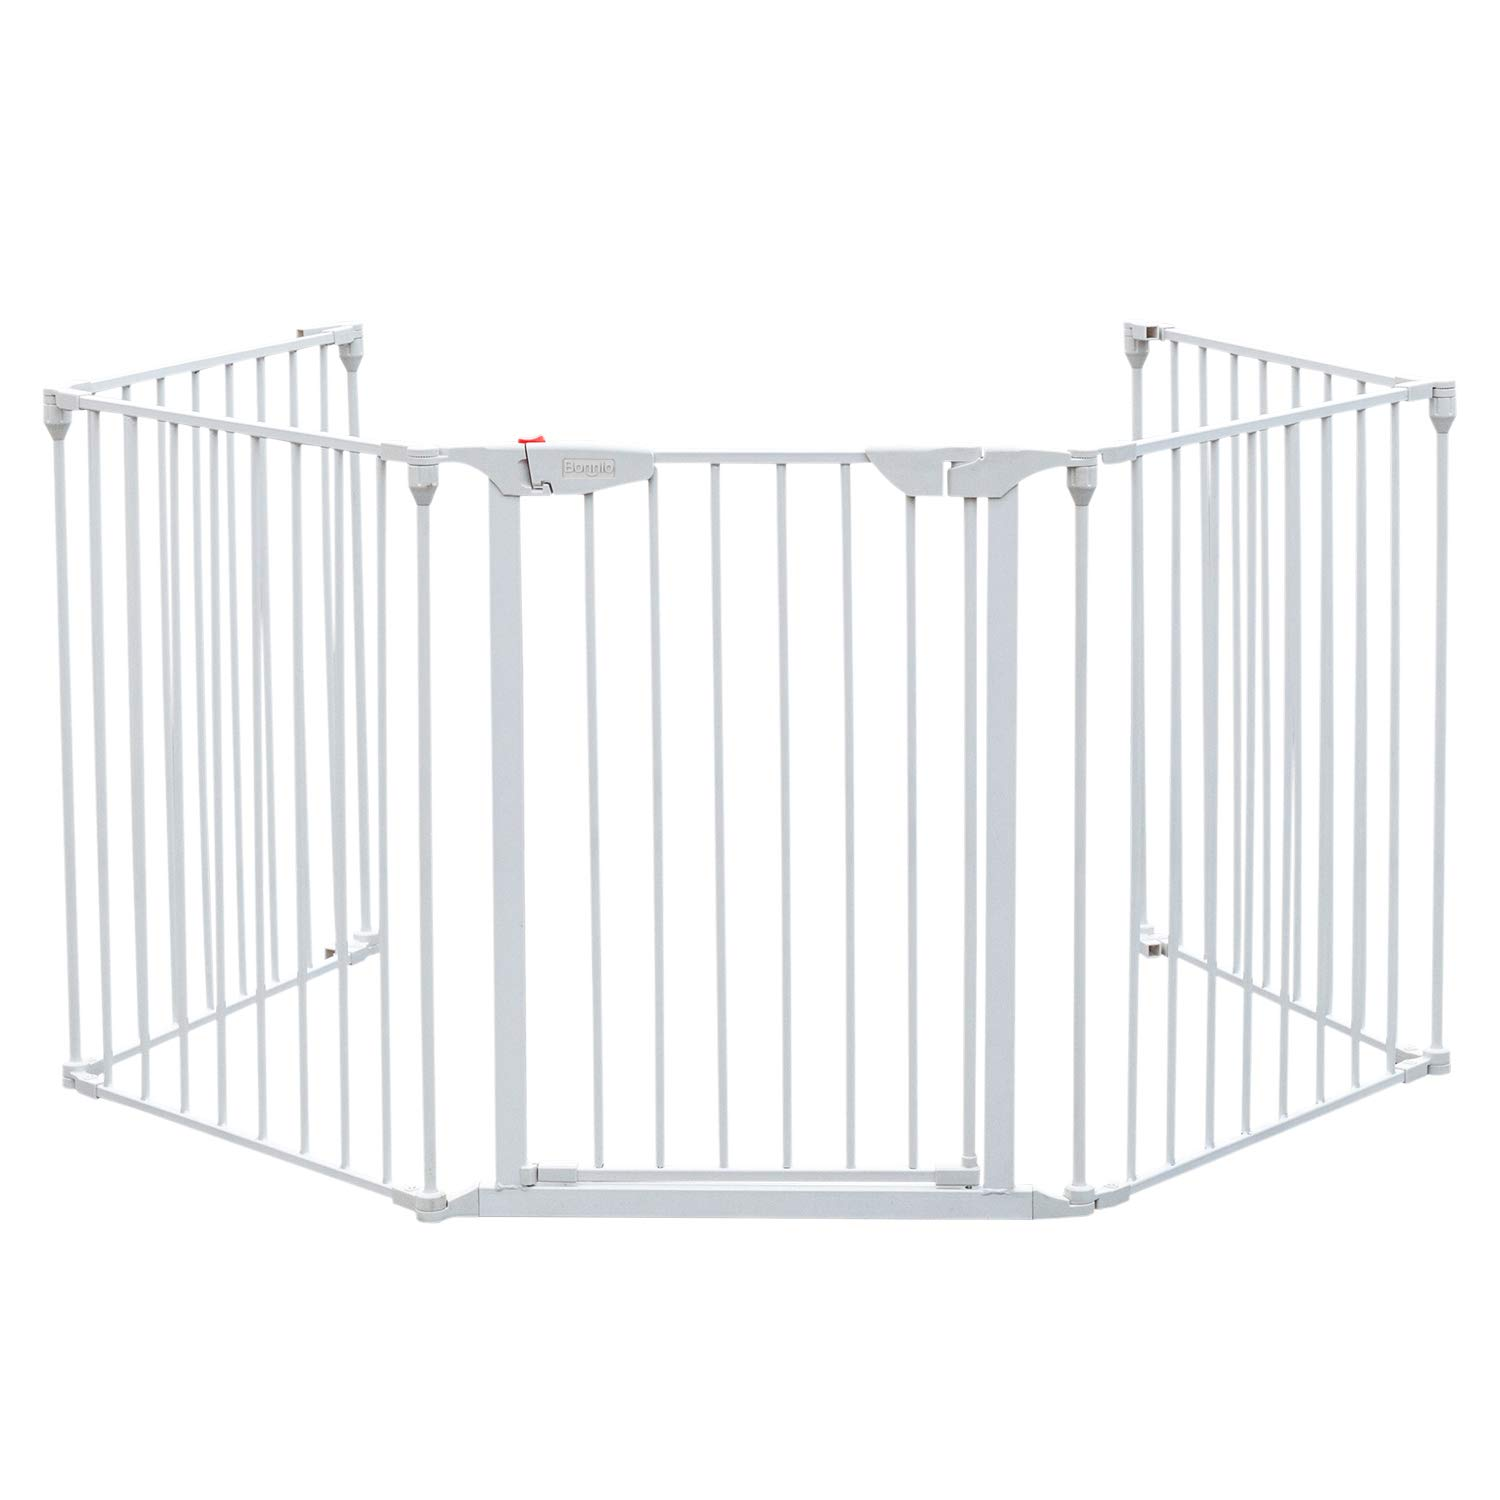 Bonnlo 121-Inch Wide Metal Baby Safety Fence/Play Yard